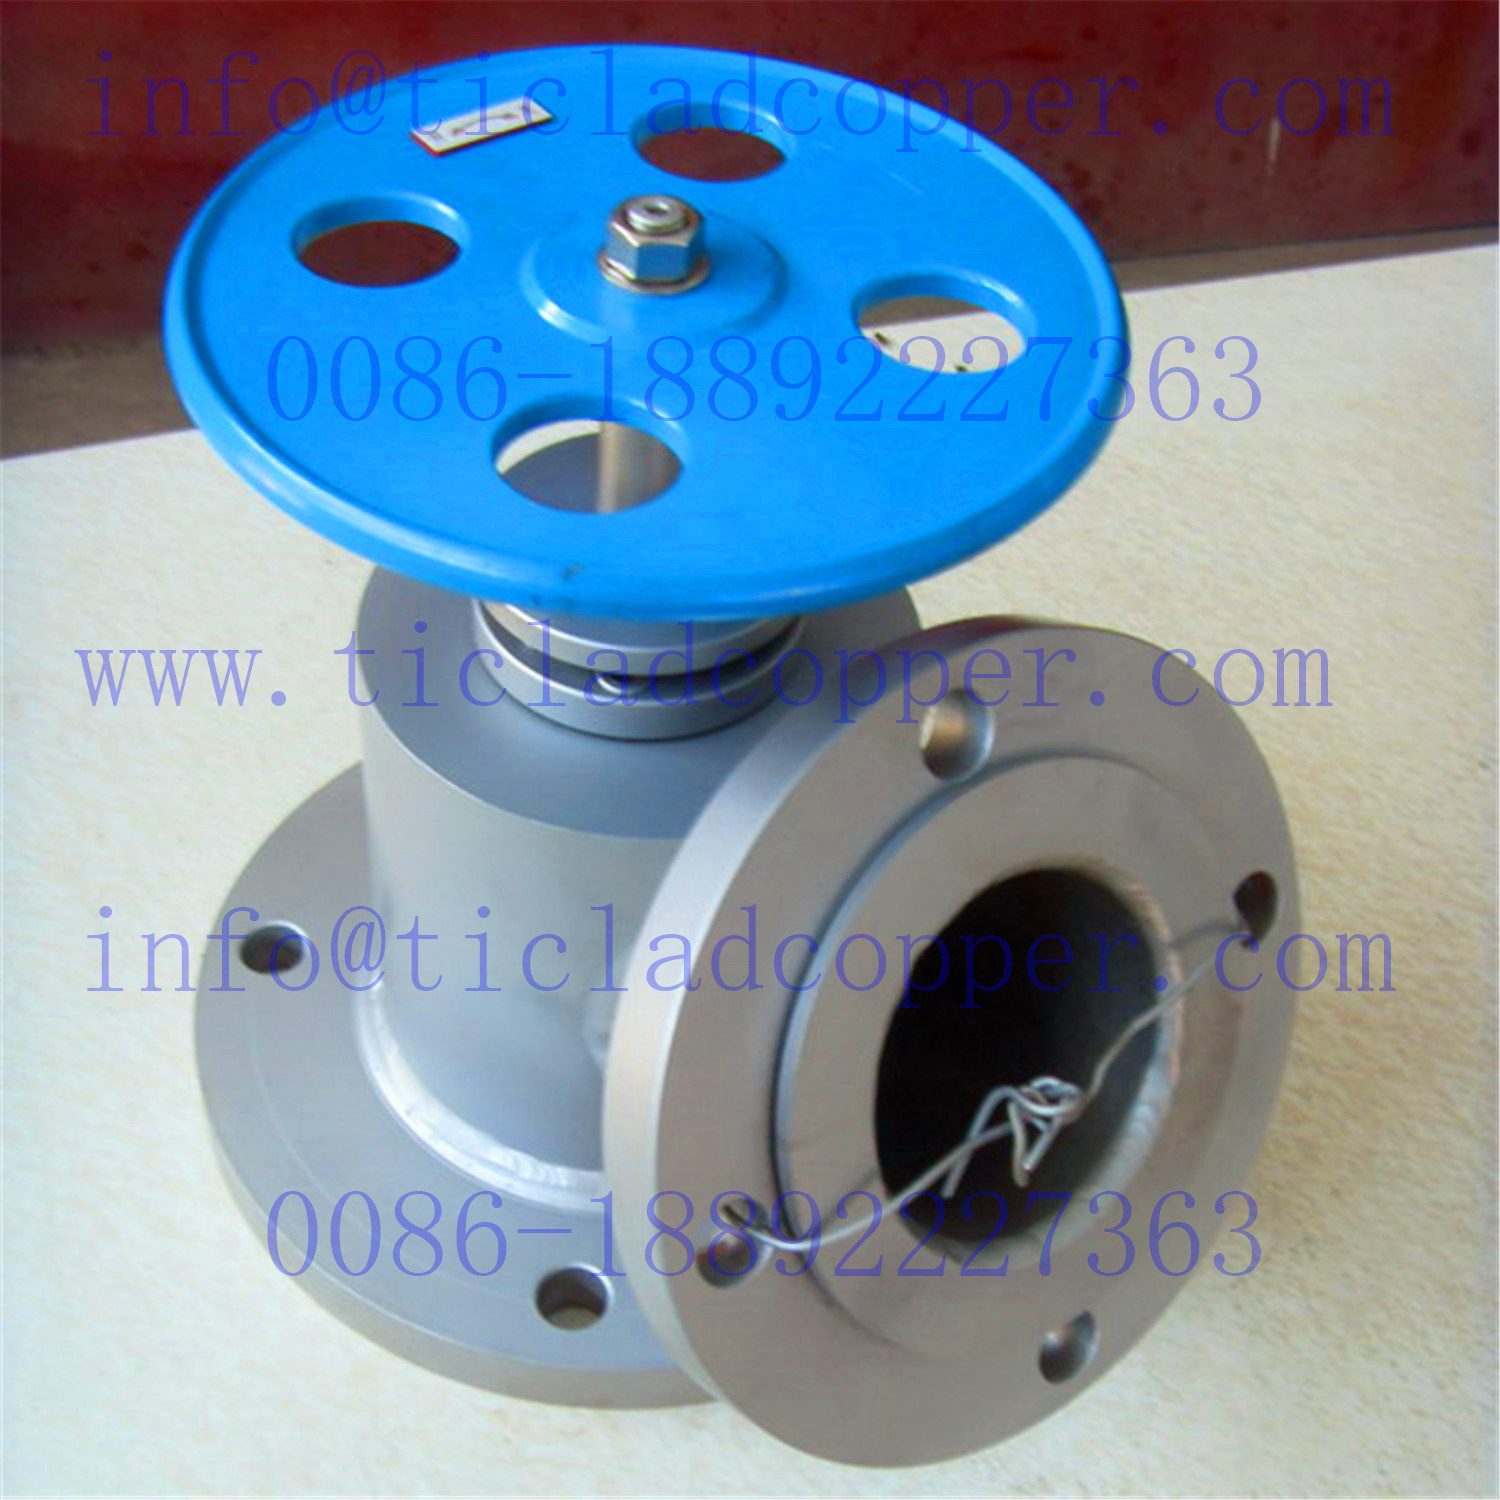 Titanium Flange Ball valve pictures & photos